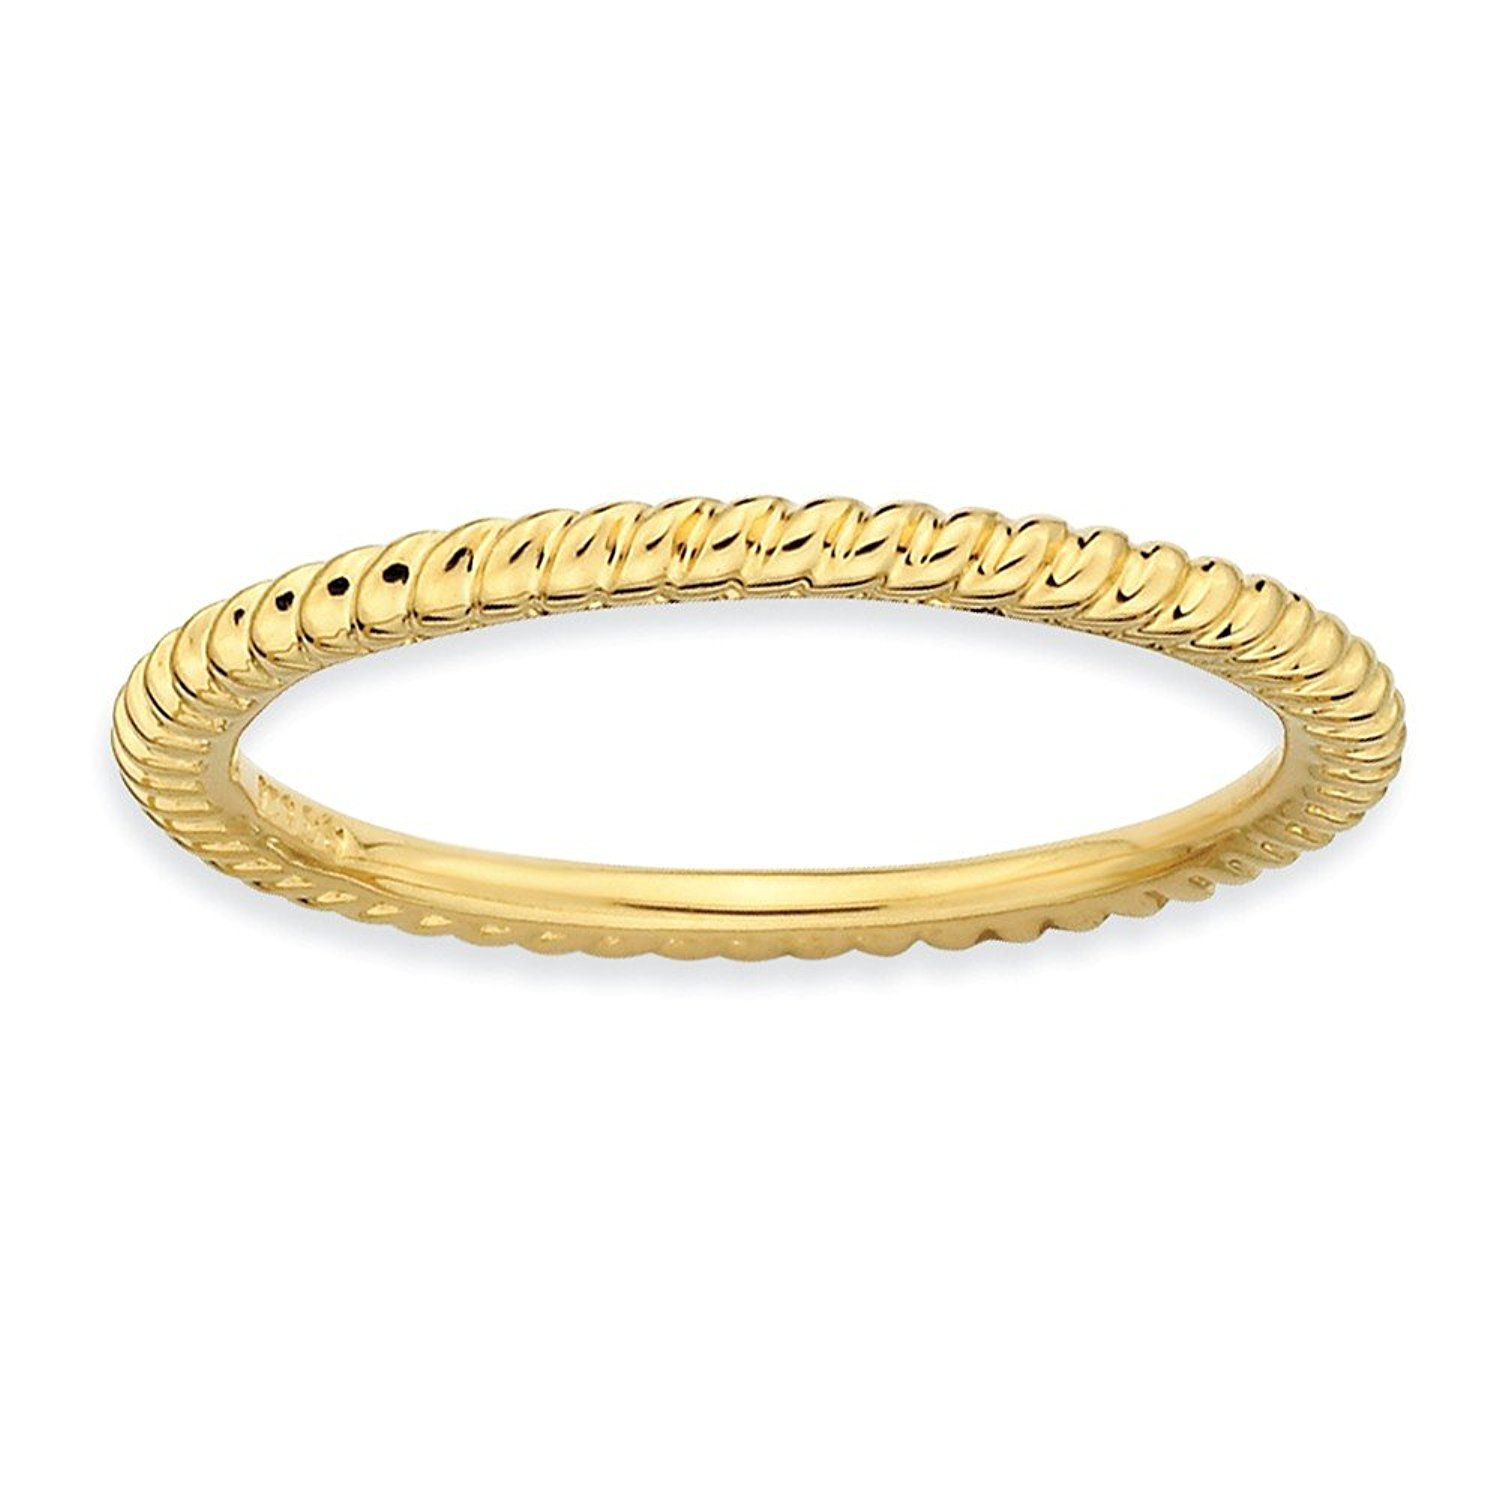 1.5mm Thin Twisted Band 18K Yellow Gold Plated Sterling Silver Stackable Expressions Ring